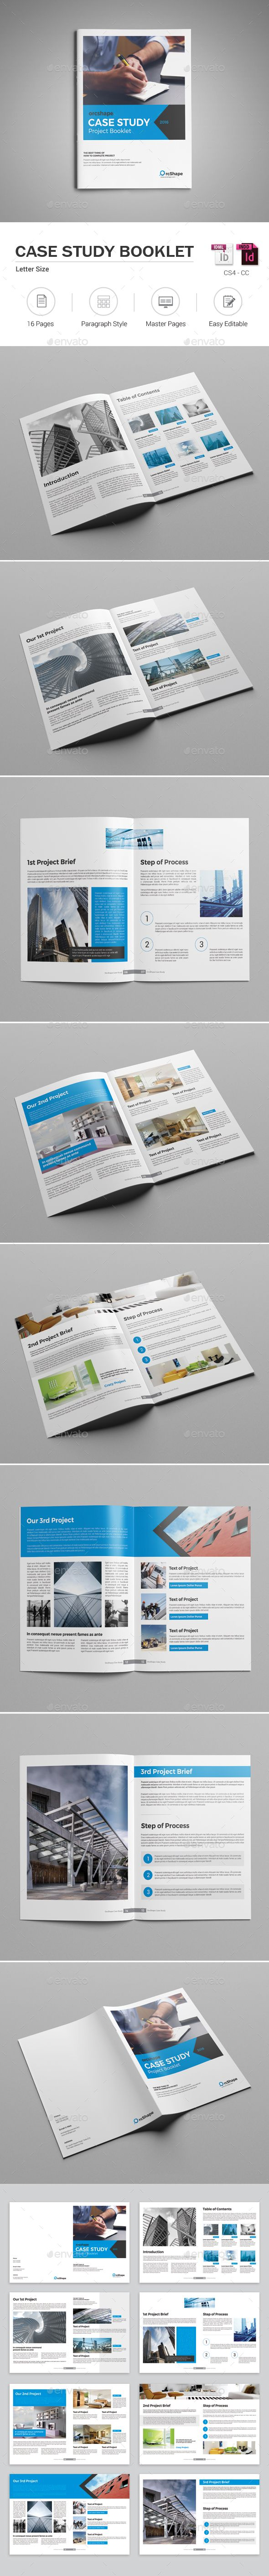 61 best Case Study Templates images on Pinterest | Page layout, Case ...